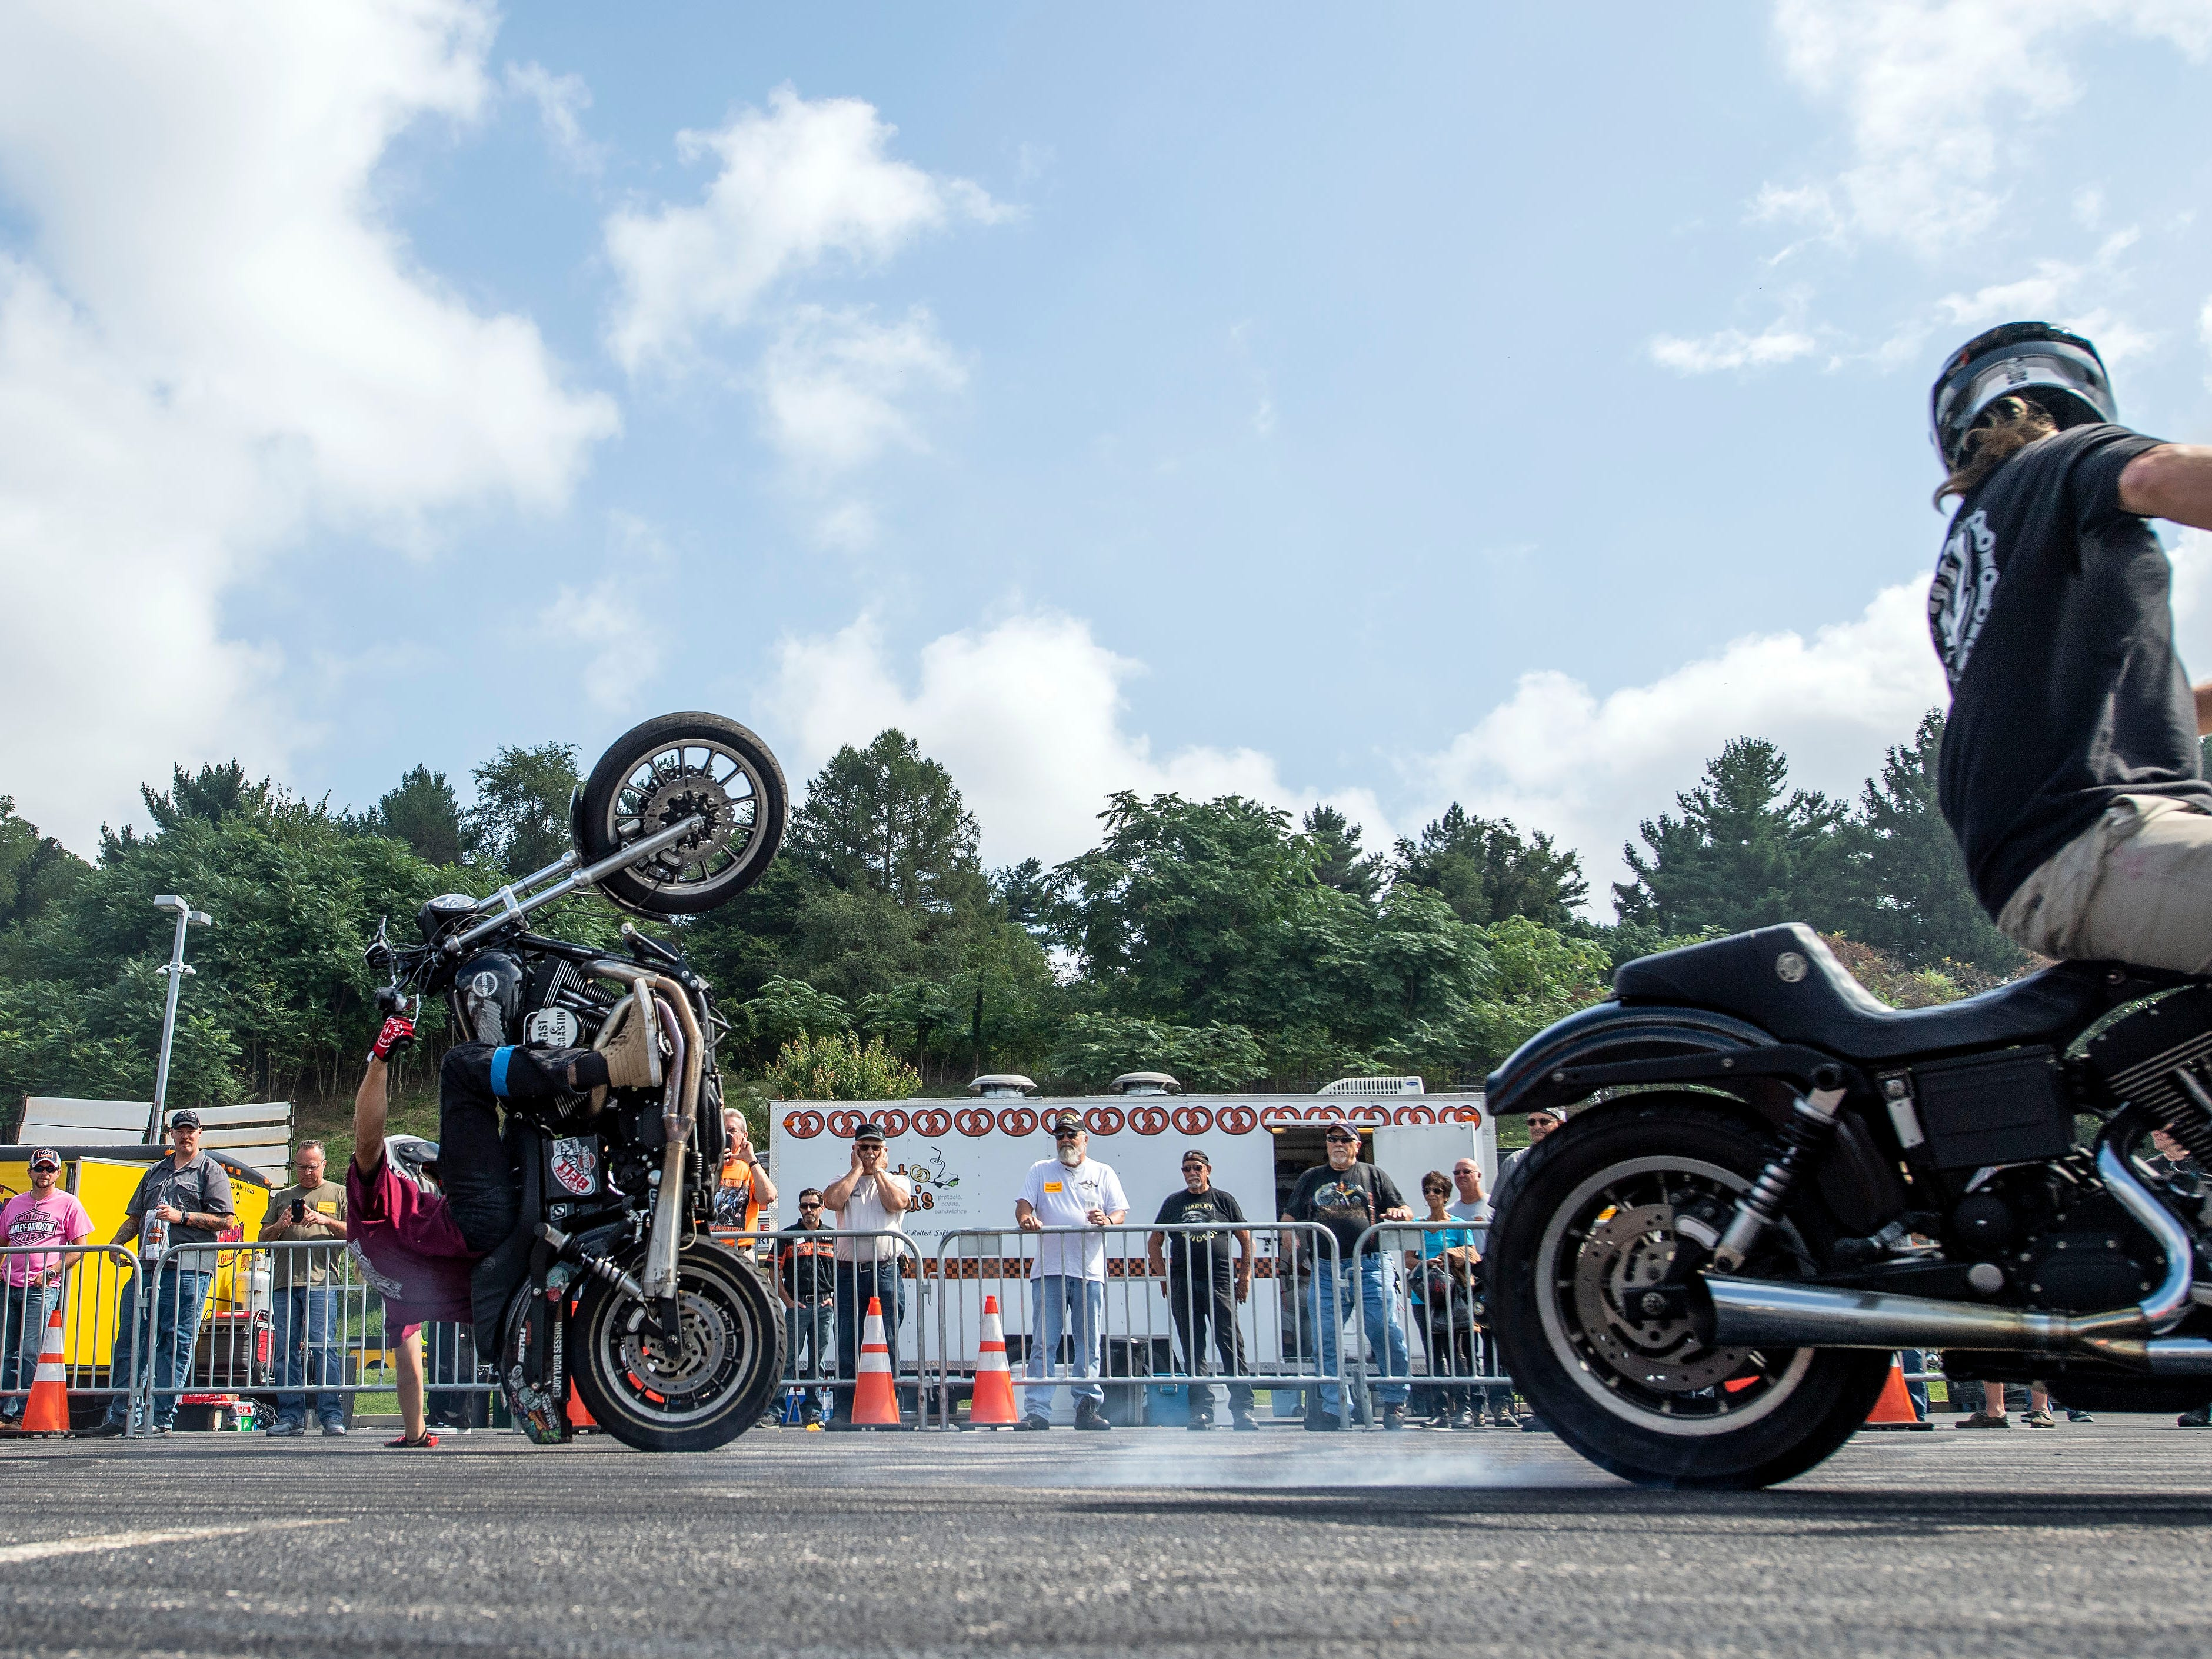 Get revved up for York Bike Night with Harley-Davidson's open house